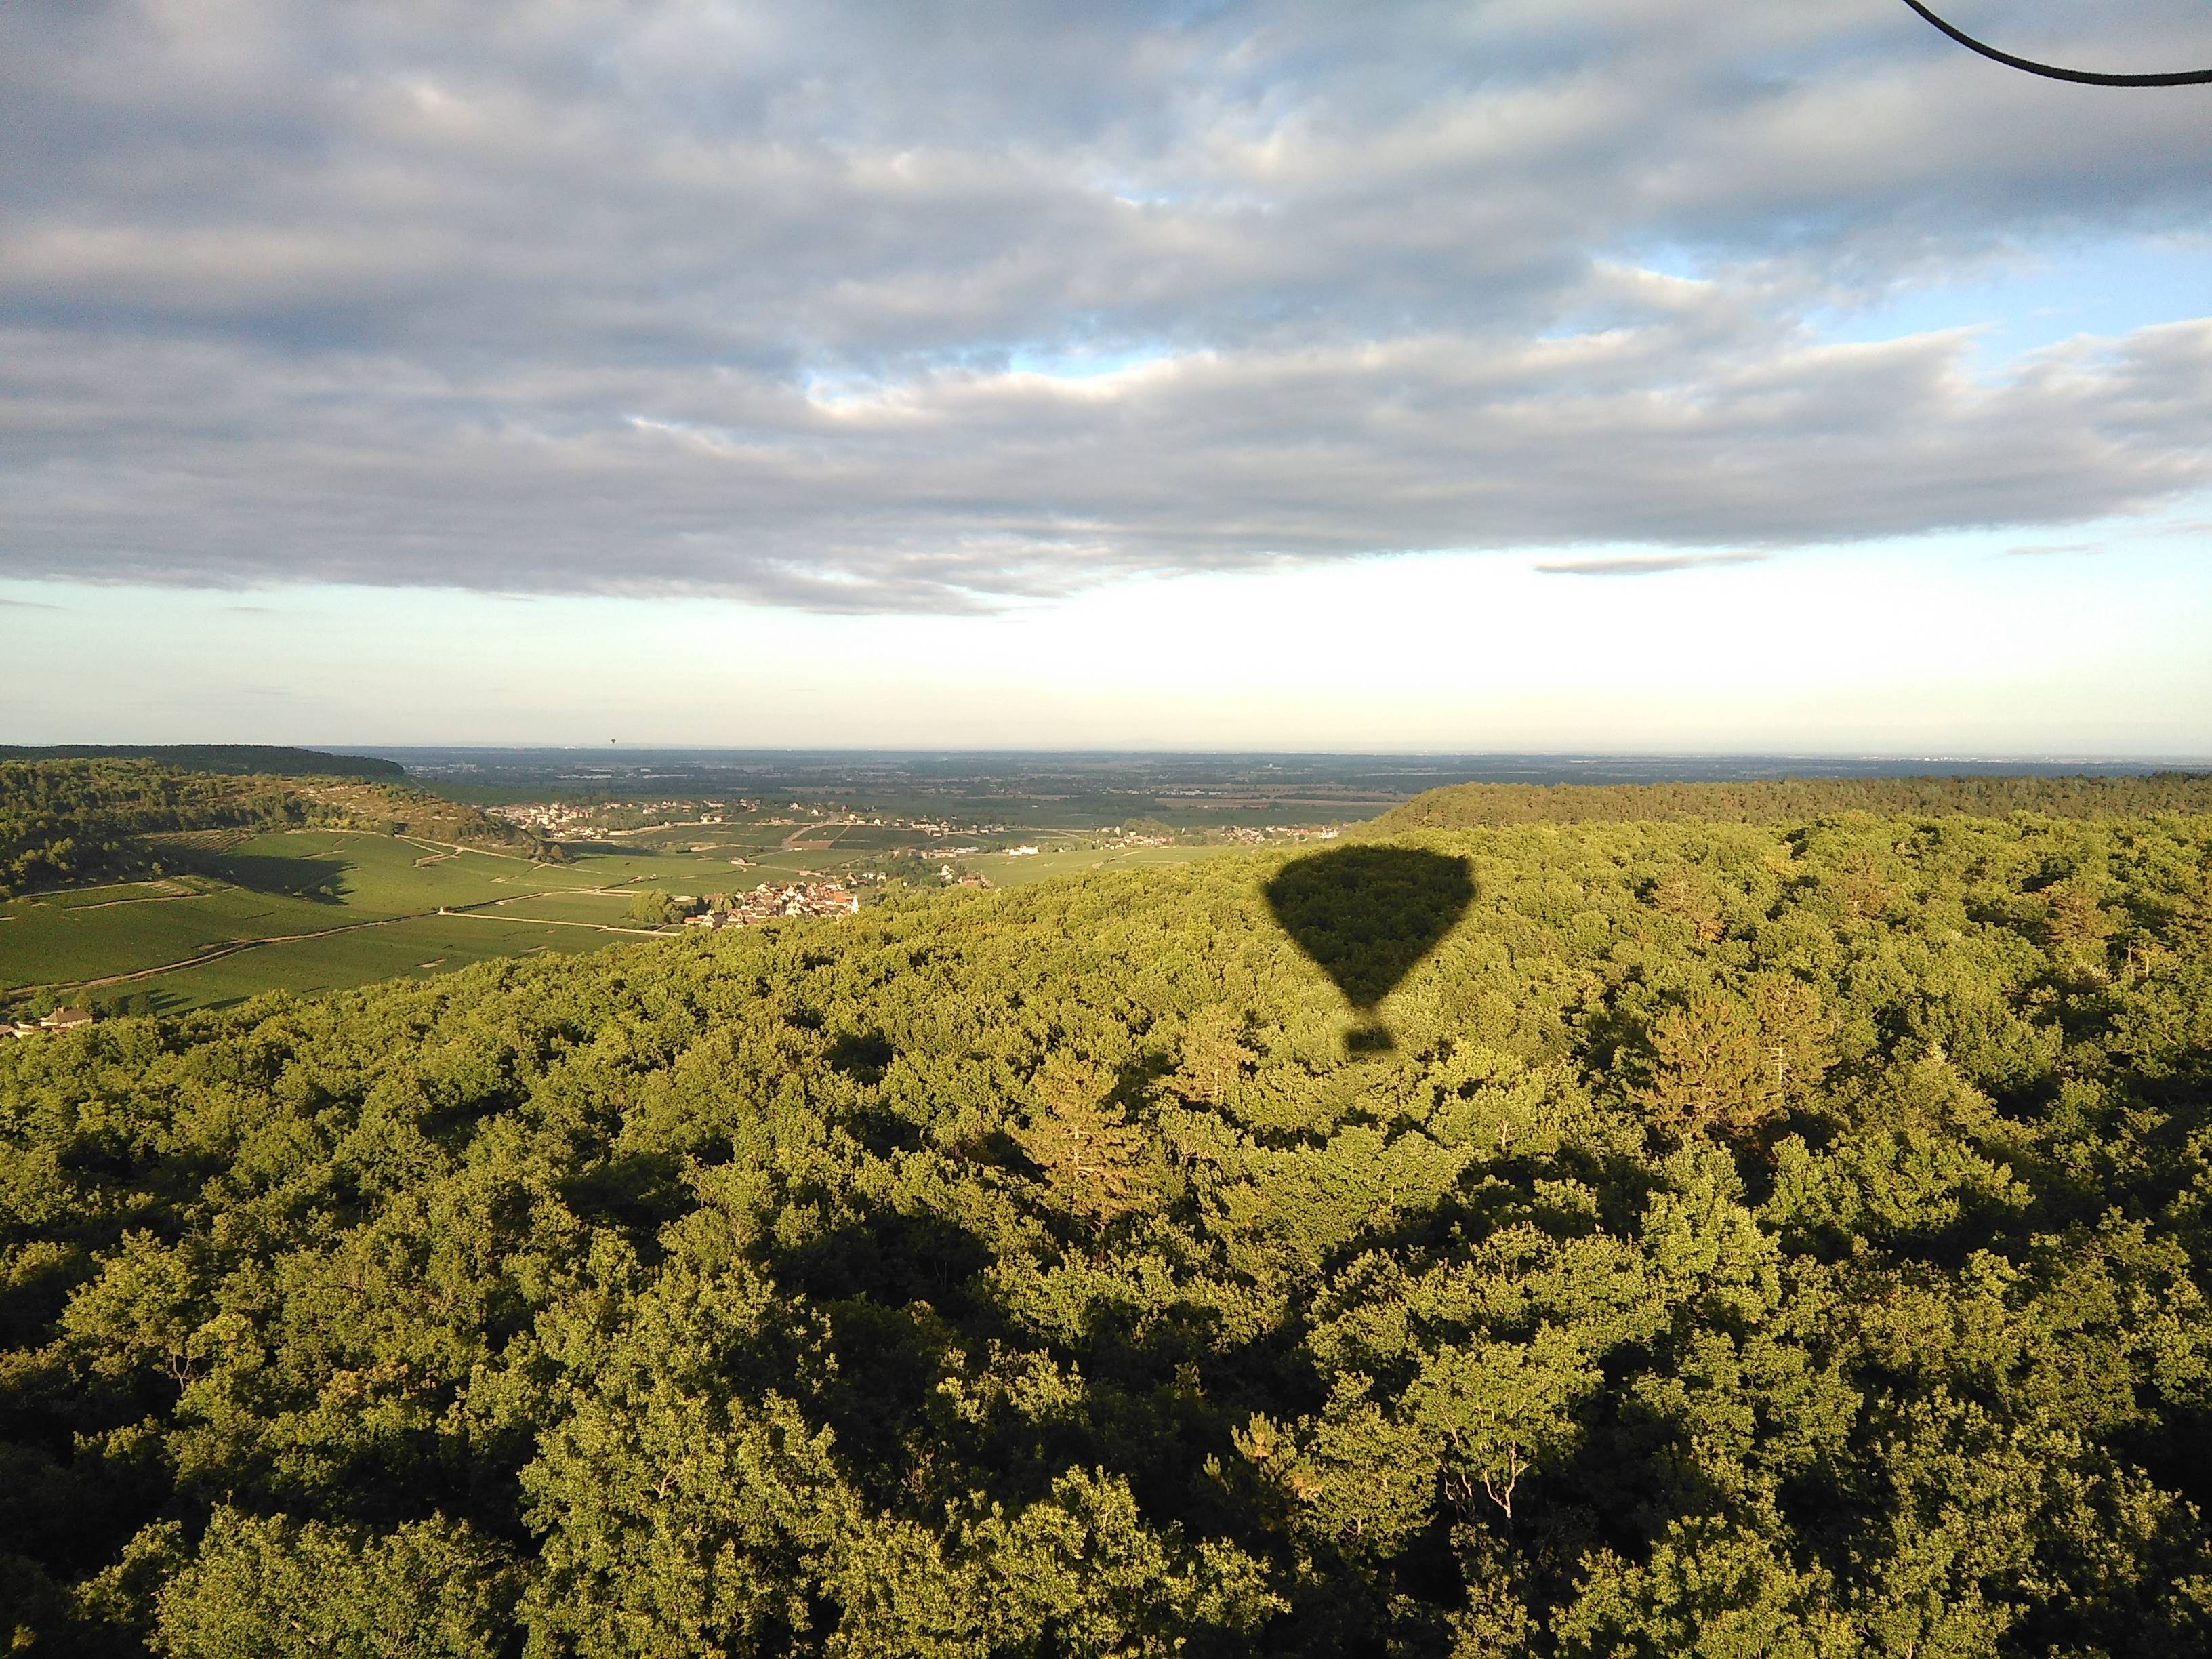 Photo 3: Vol en montgolfière à Beaune !!!